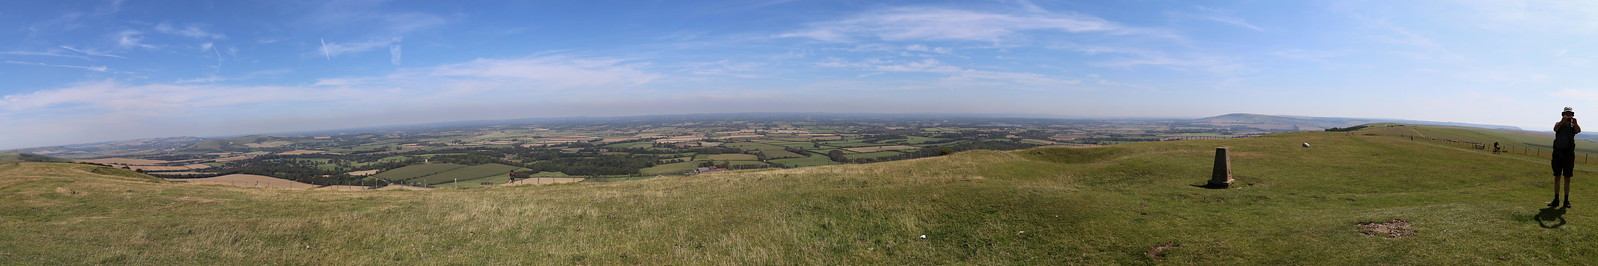 Another view North from the South Downs